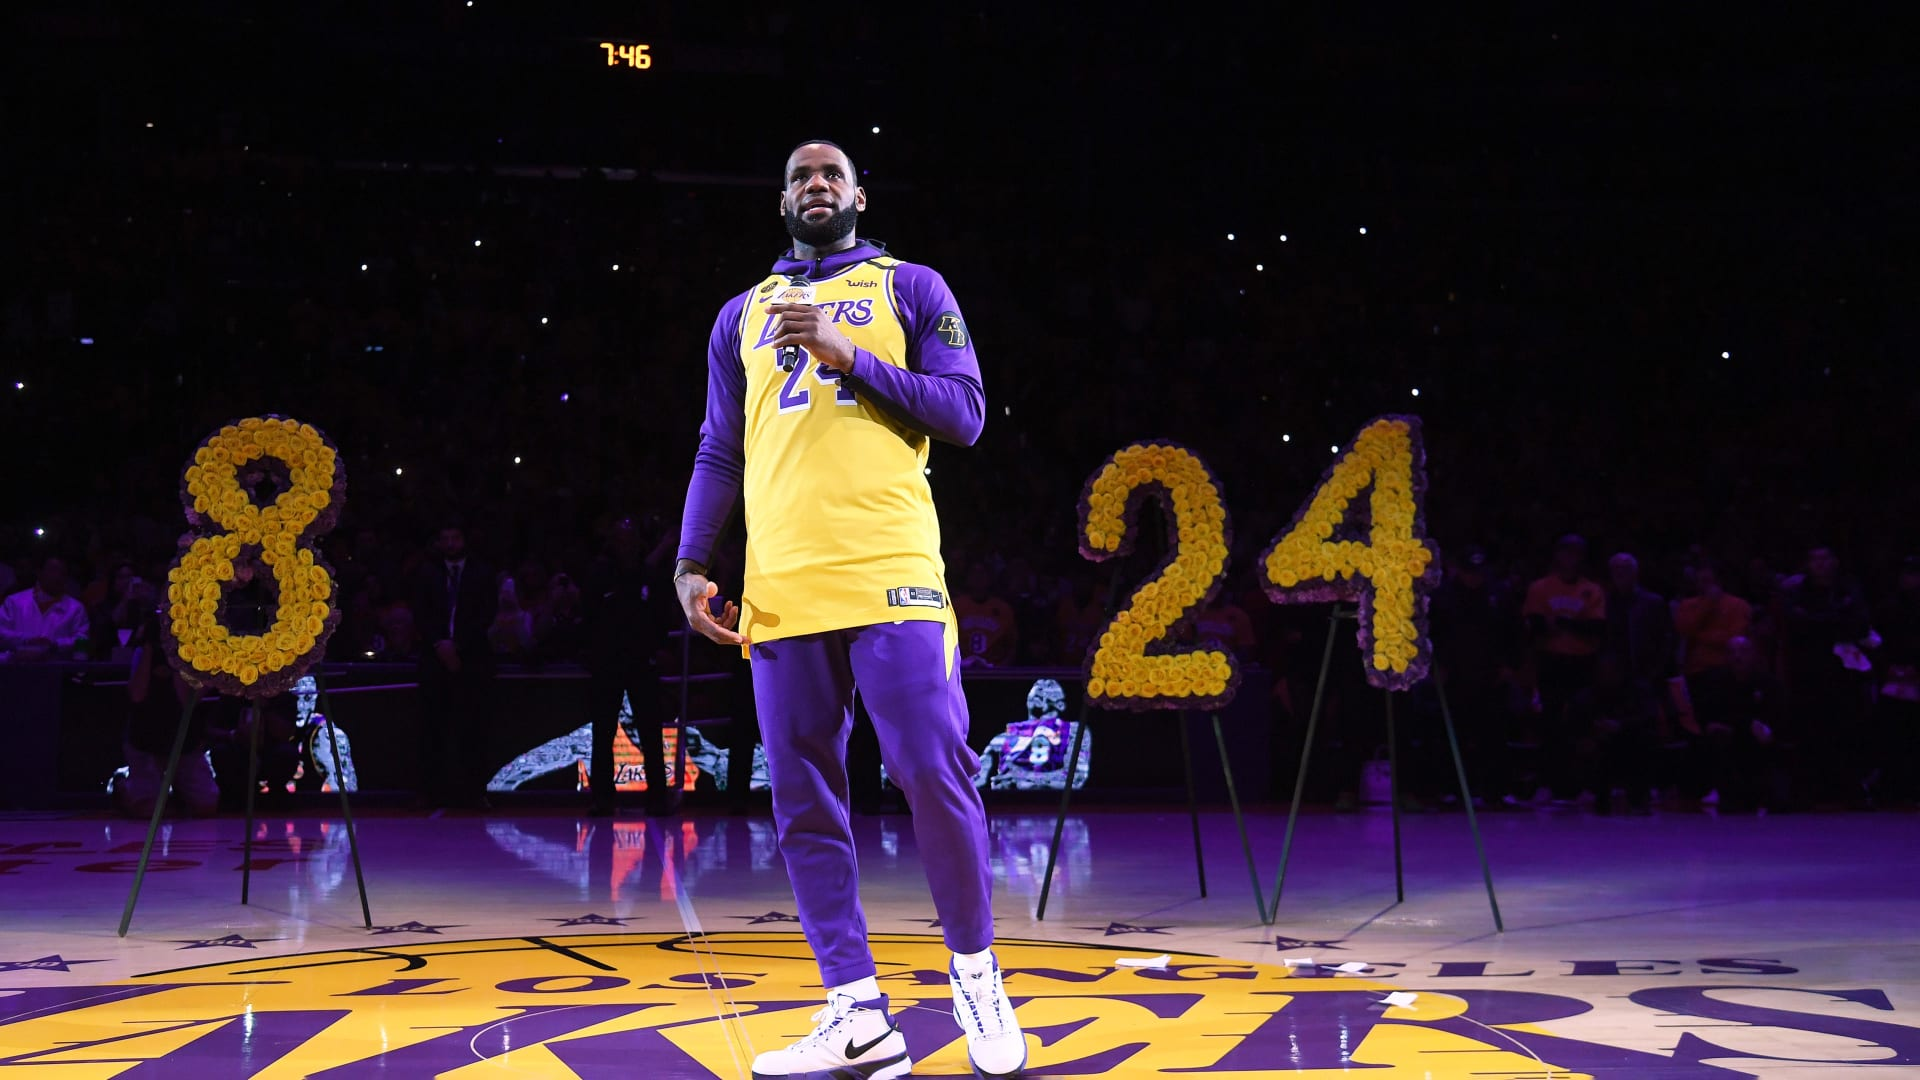 On January 31, 2020, LeBron James speaks during the Los Angeles Lakers pregame ceremony to honor Kobe Bryant.